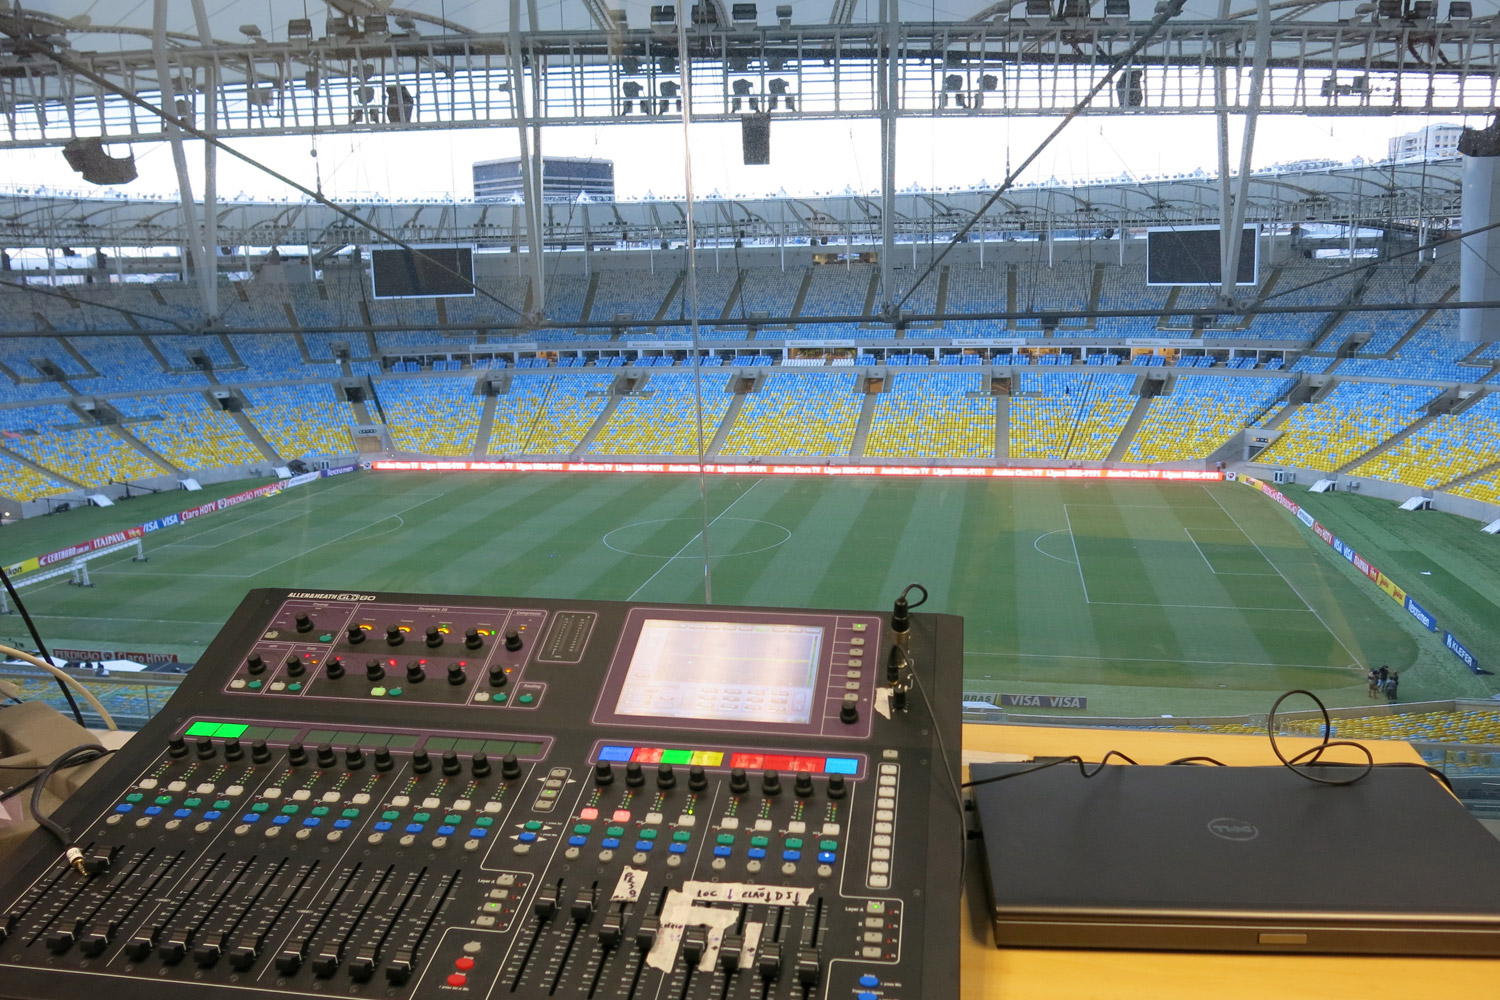 Maracana Stadium in Rio de Janeiro, Brazil. One of the biggest soccer stadiums in the world, home of the 2014 Olympic Games and World Cup. WSDG was called for consulting and installation of the audio/video of the whole facility. View from FOH.